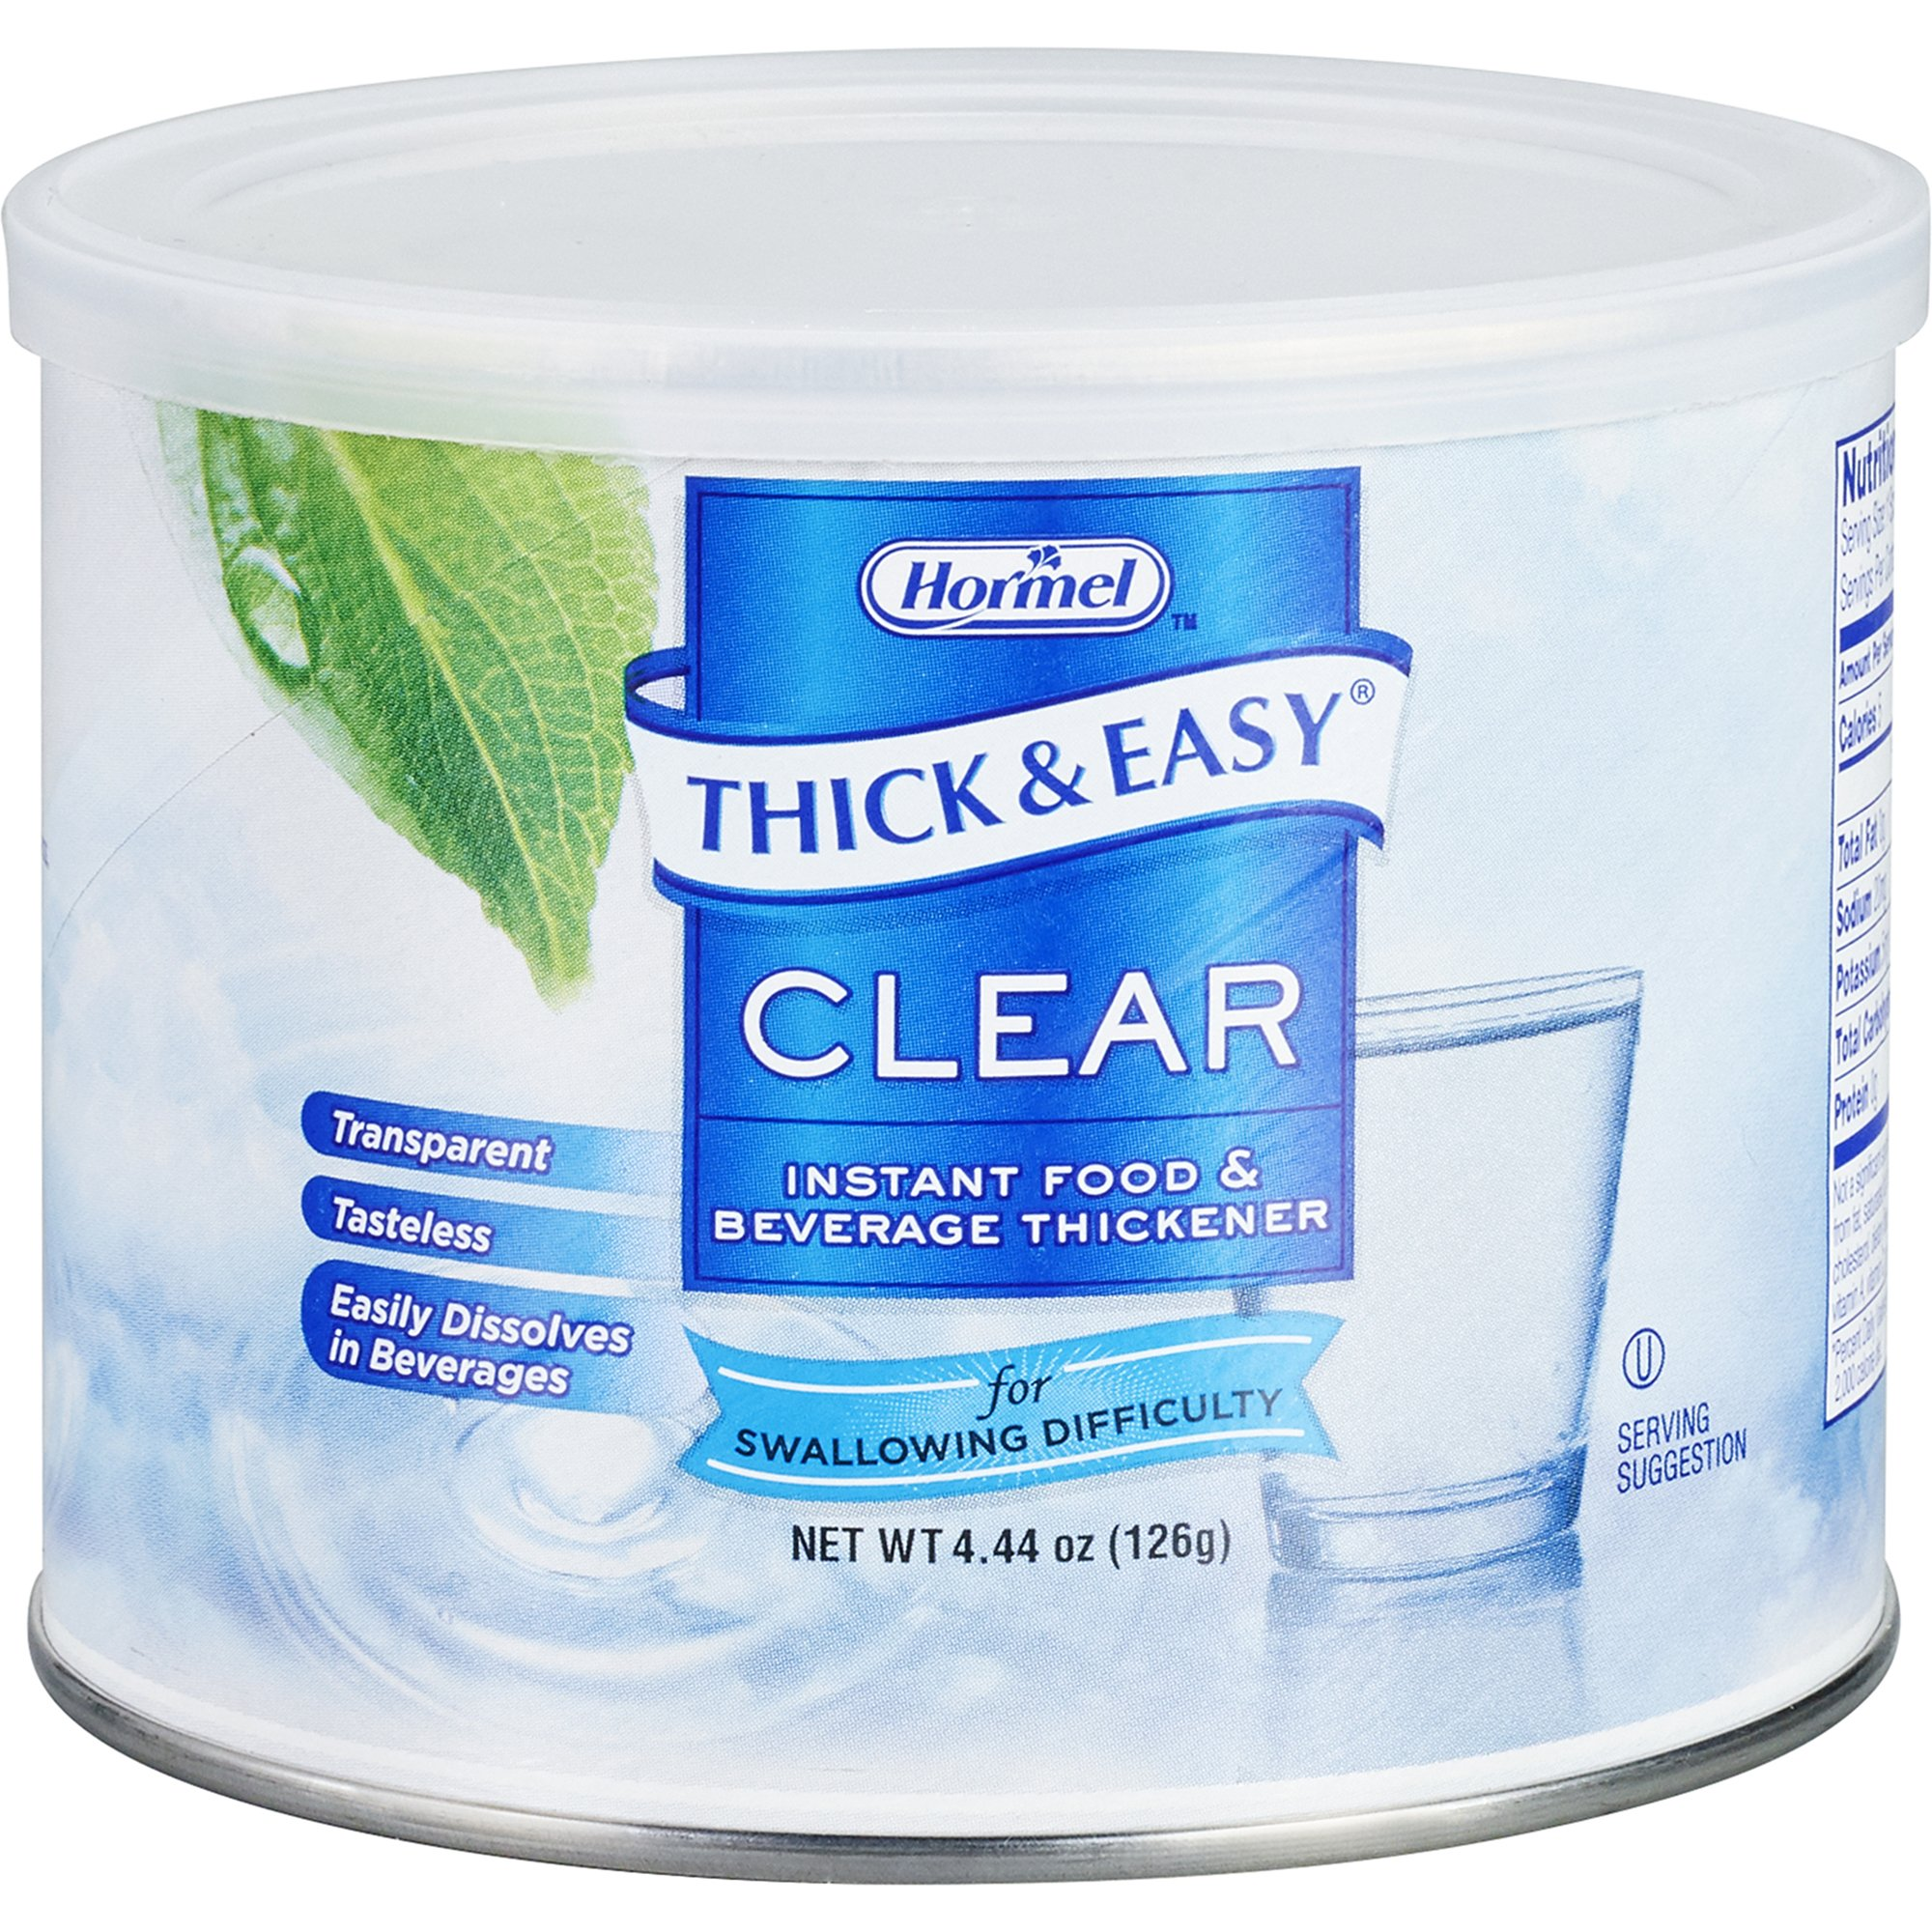 Thick & Easy Clear Food and Beverage Thickener, 4.4 oz. Canister, 25544, 1 Each